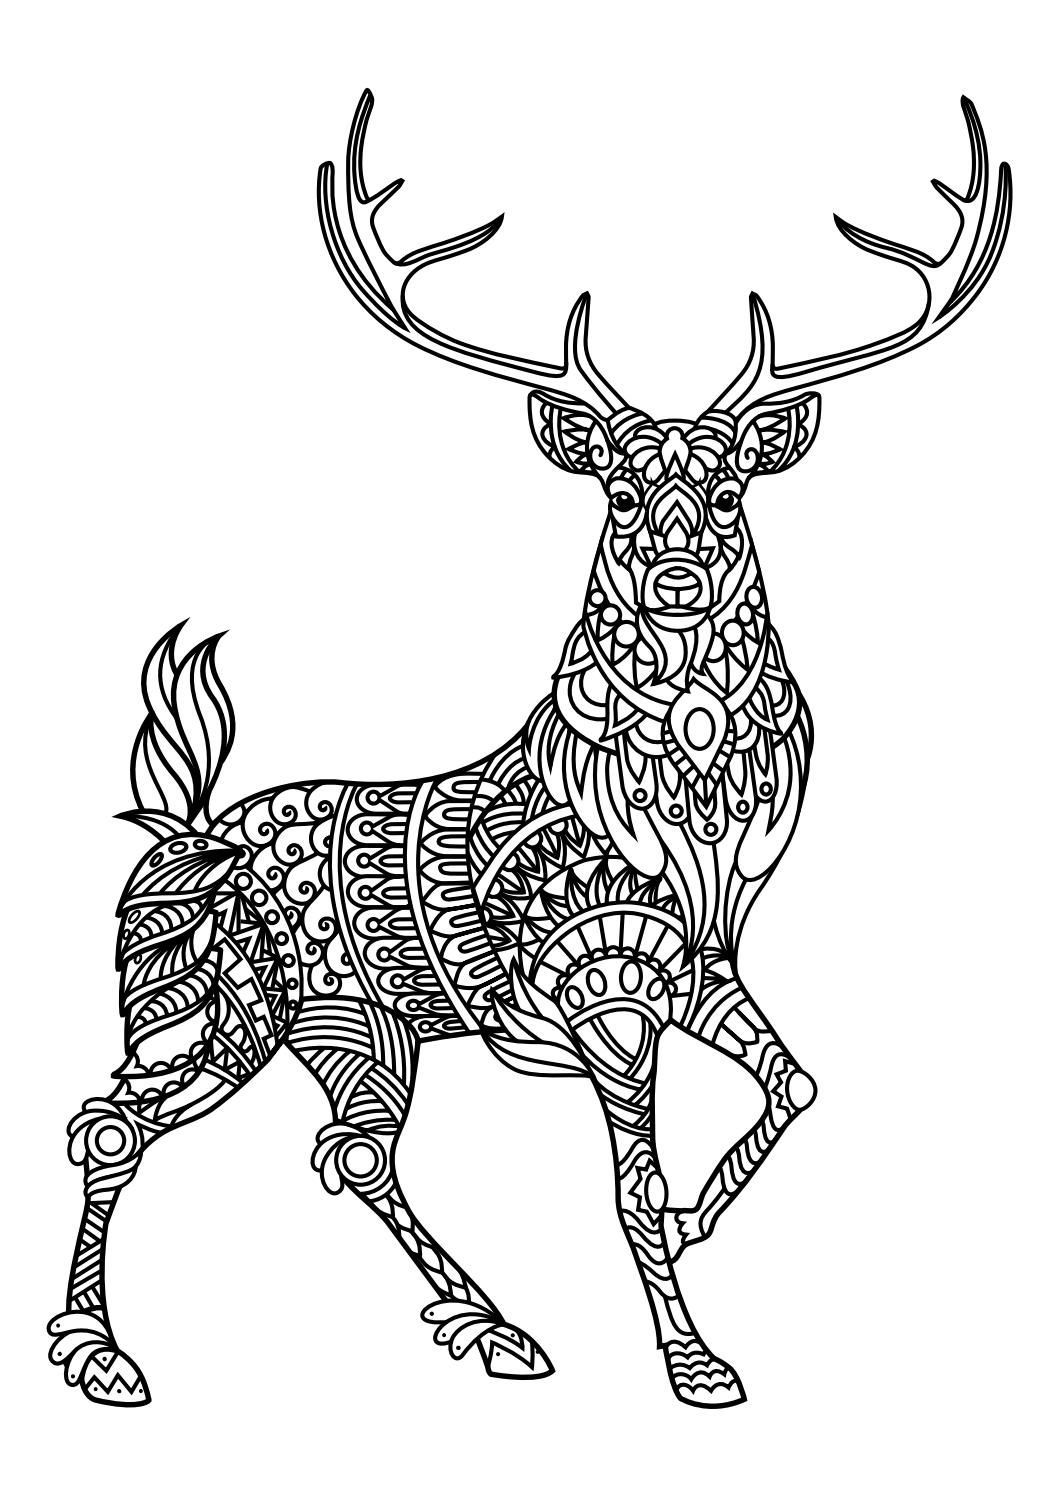 Animal coloring pages pdf Animal Coloring Pages is a free adult ...